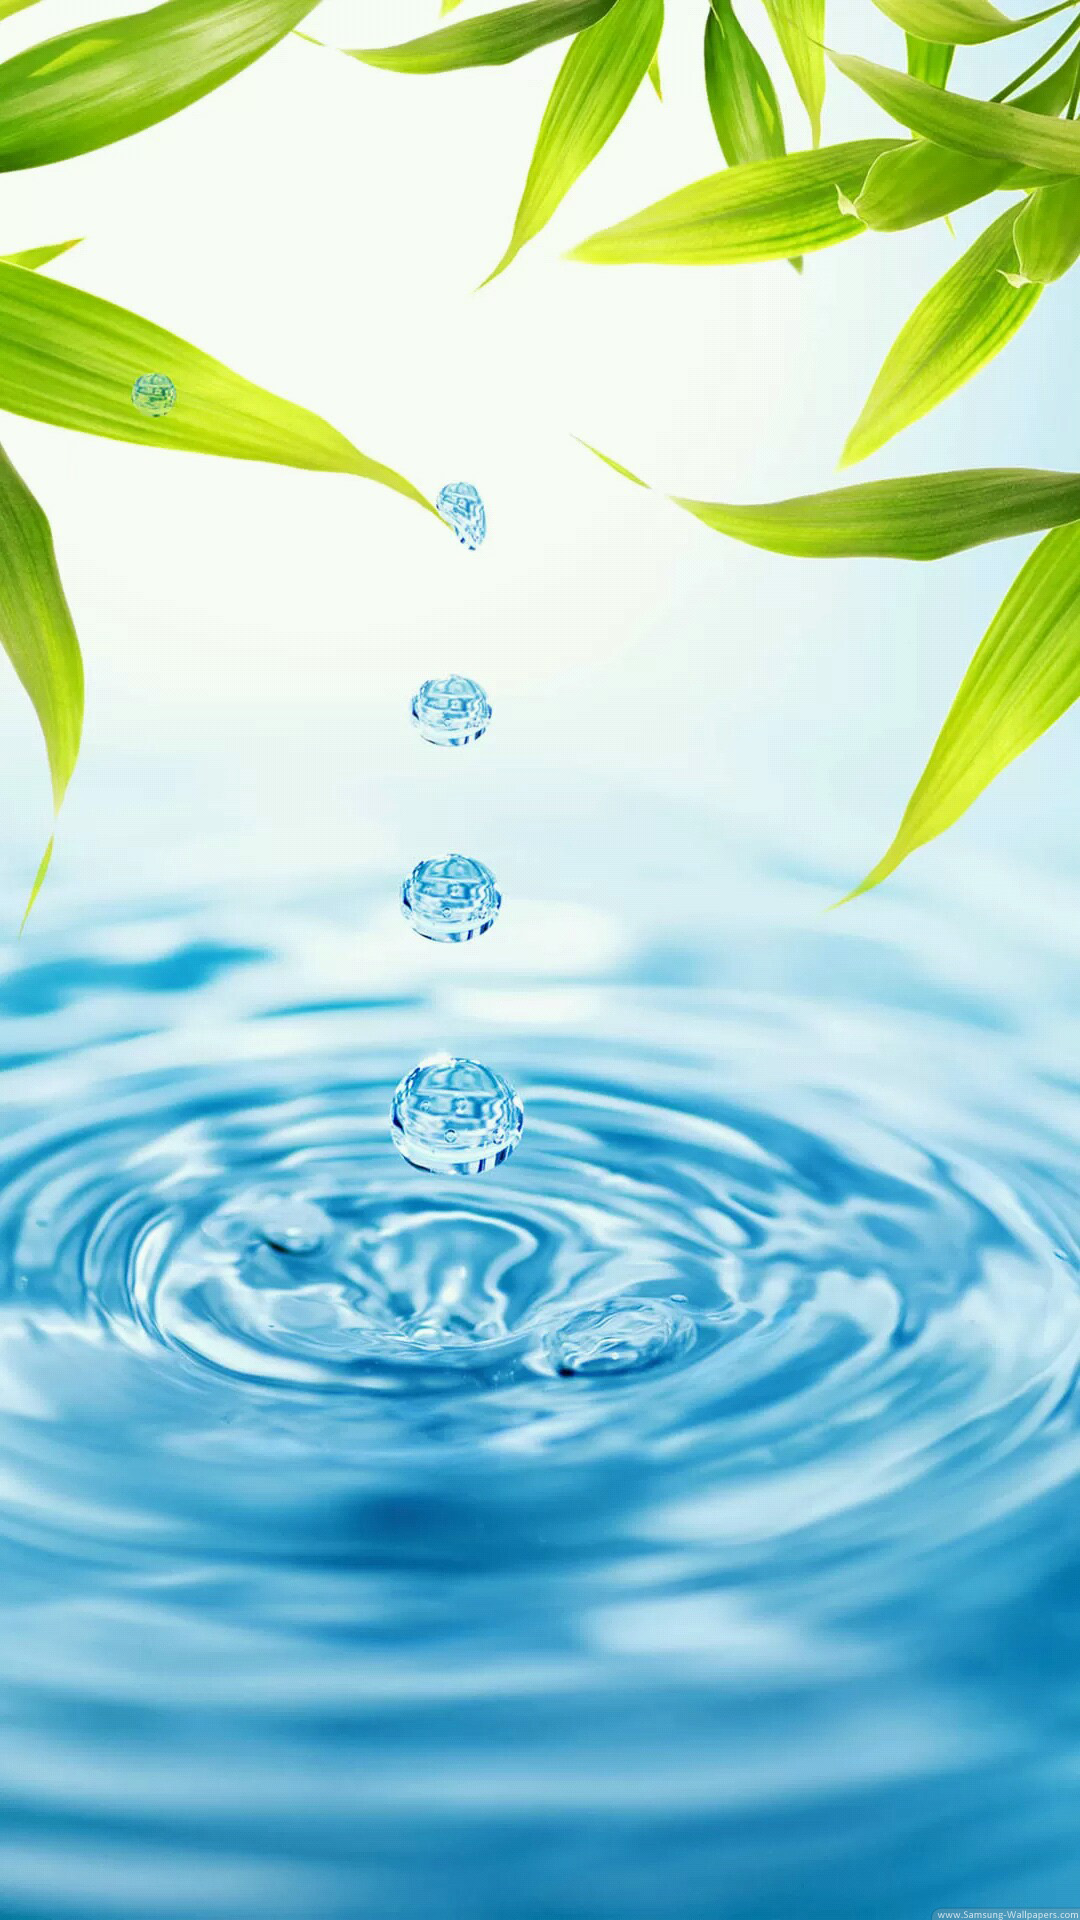 Wallpapers Of Water Posted By John Tremblay